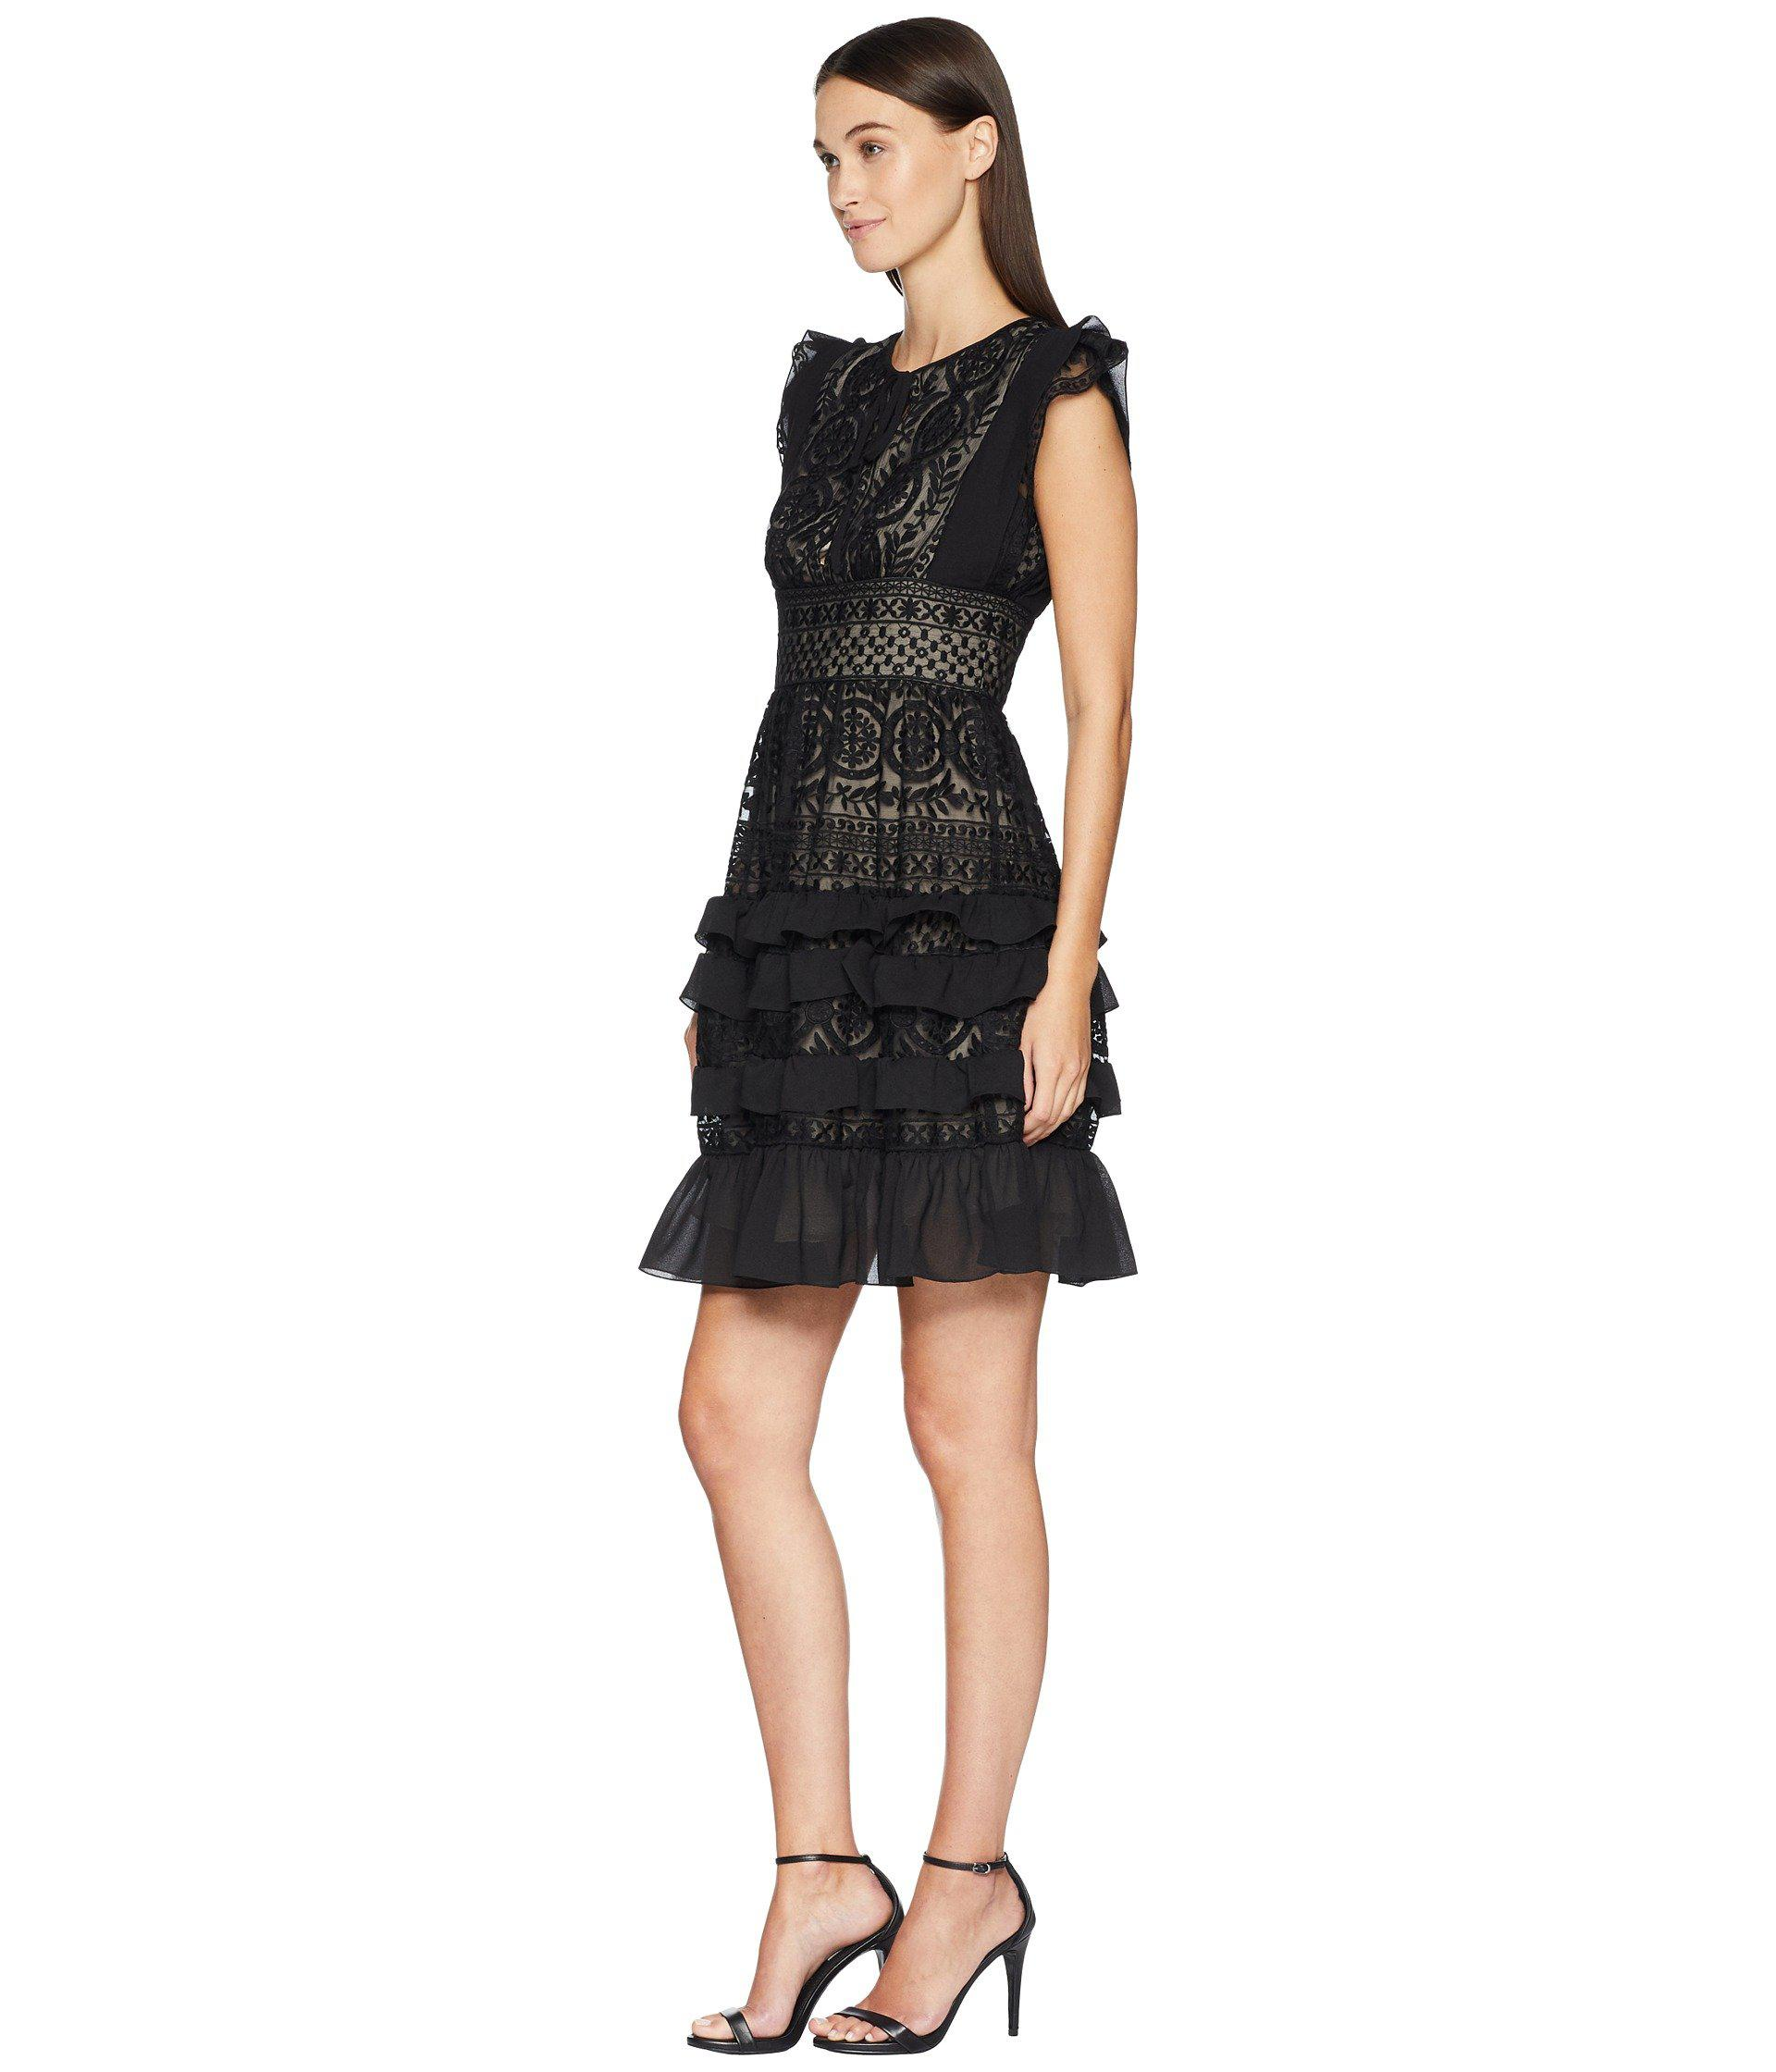 4dcf96c79db Lyst - ML Monique Lhuillier Dress With Keyhole Detail And Skirt Ruffle ( black) Women s Dress in Black